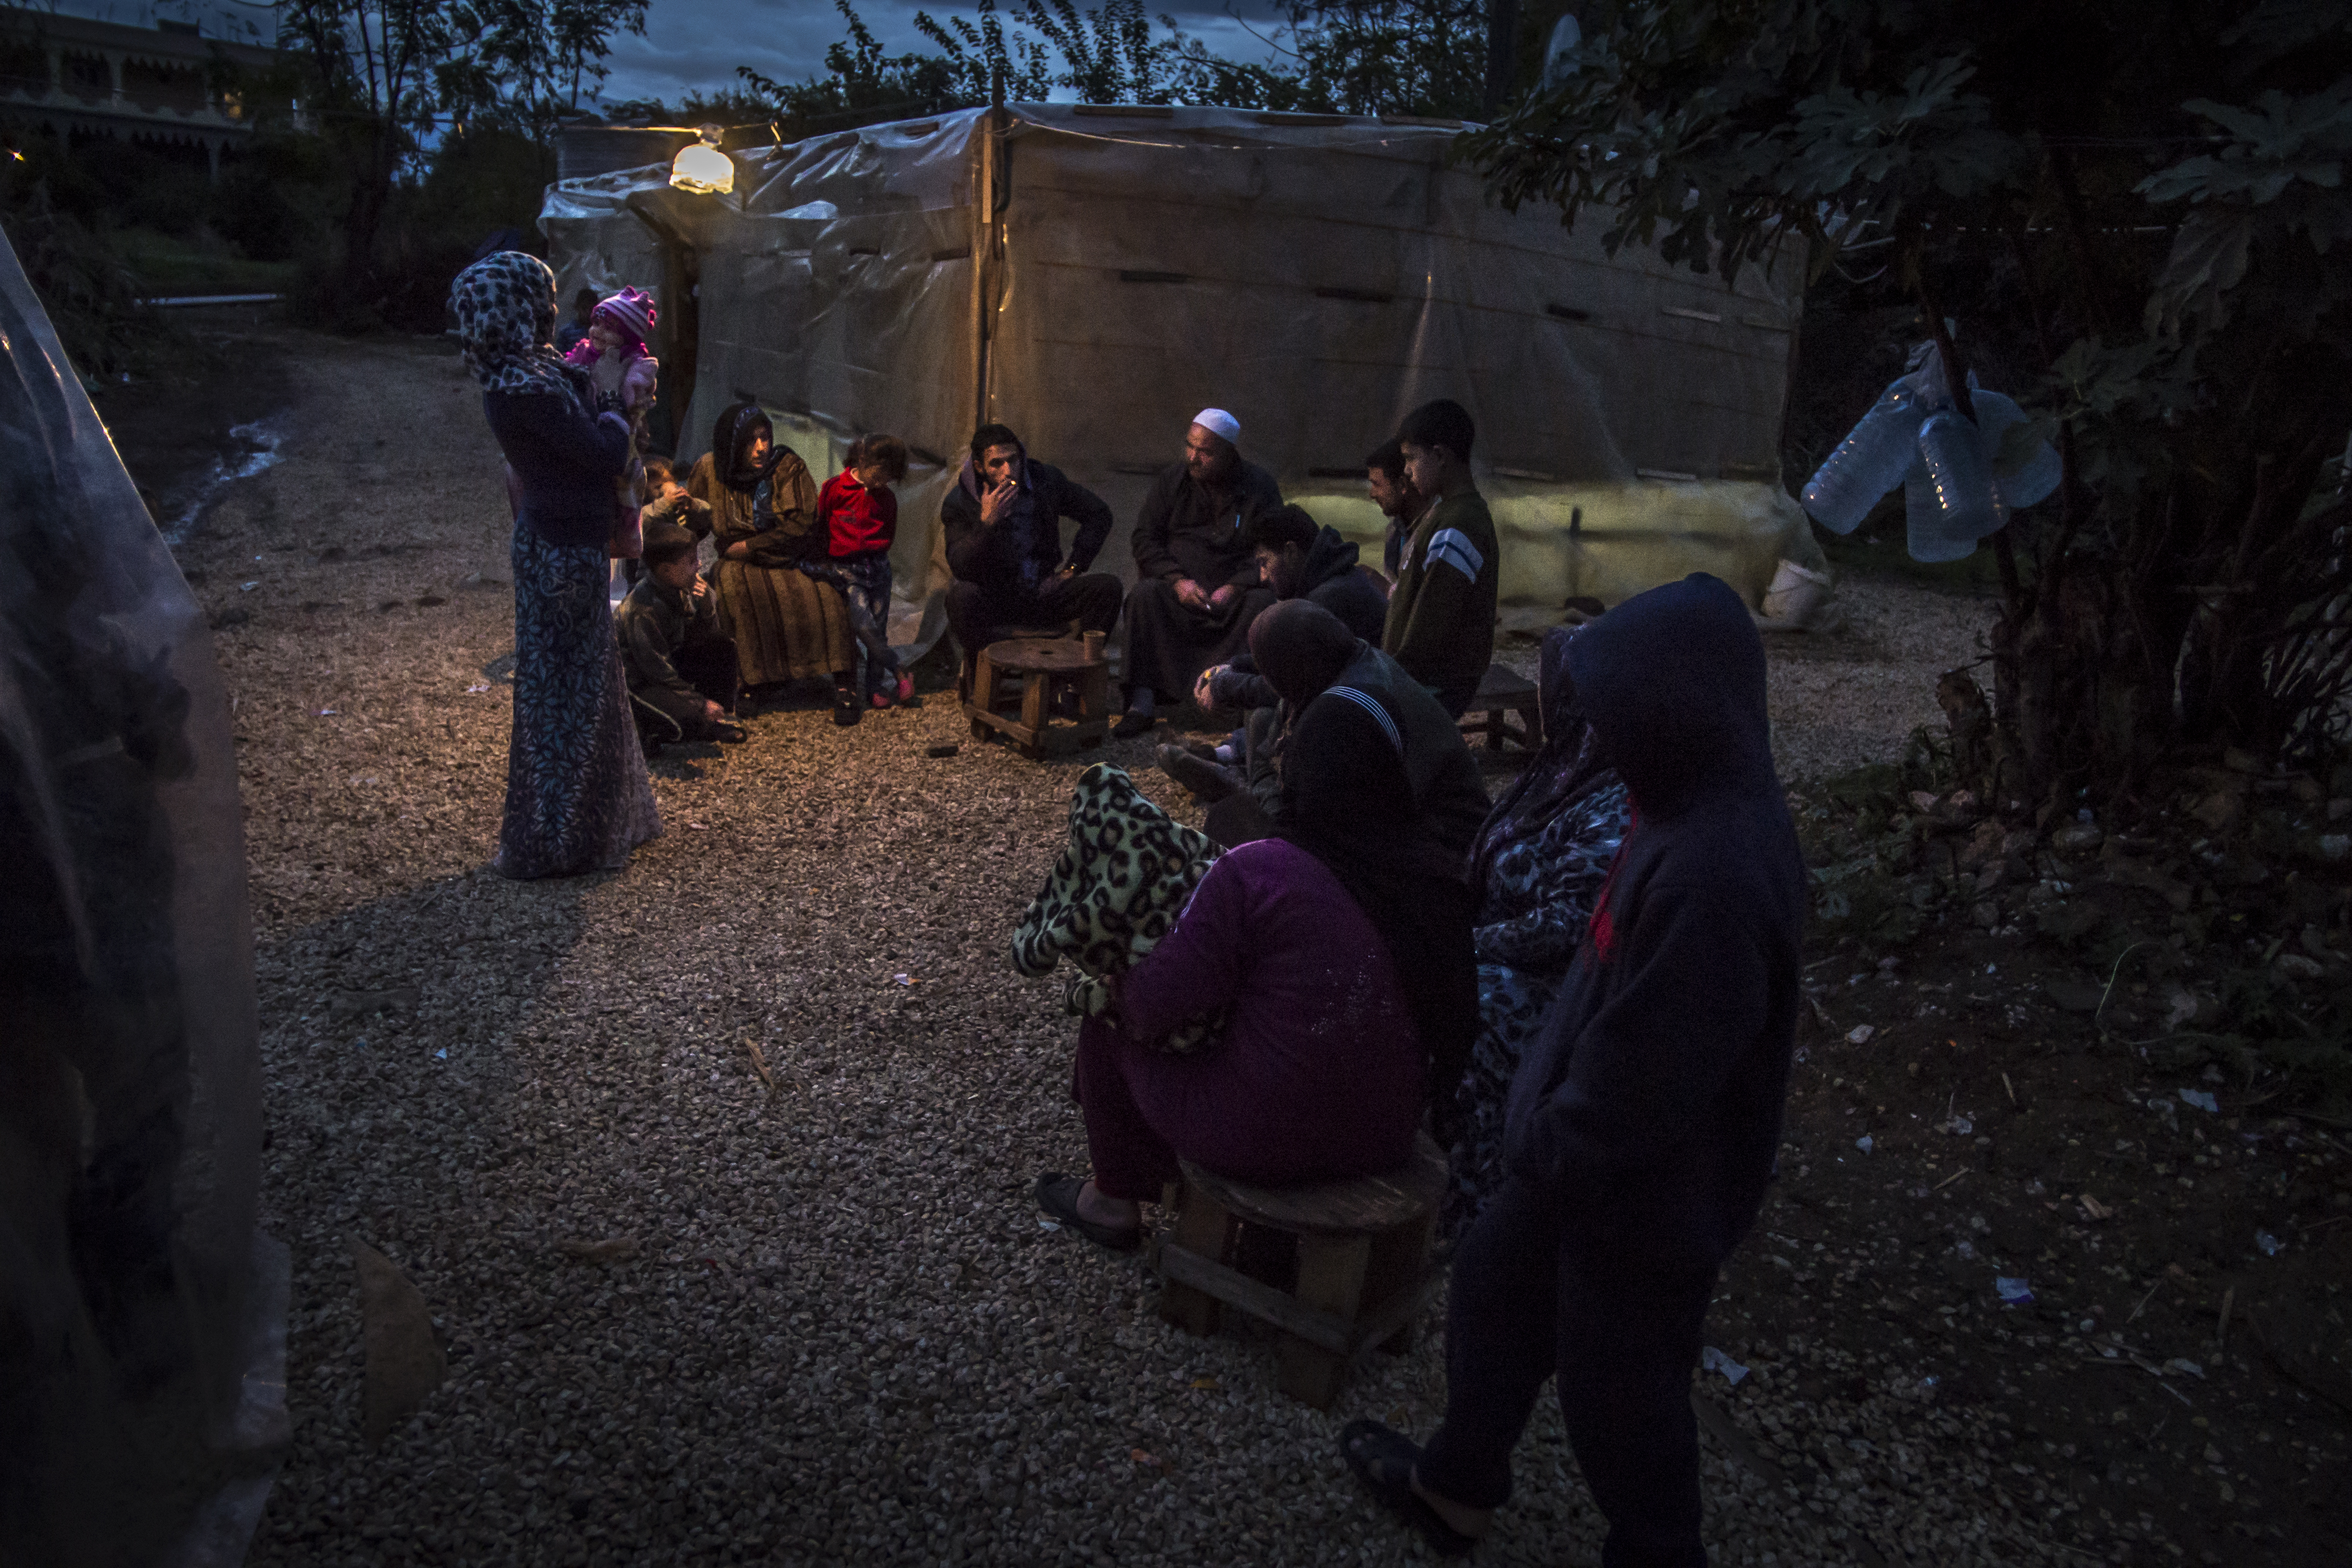 A group of people sitting / standing around a makeshift tent at night.